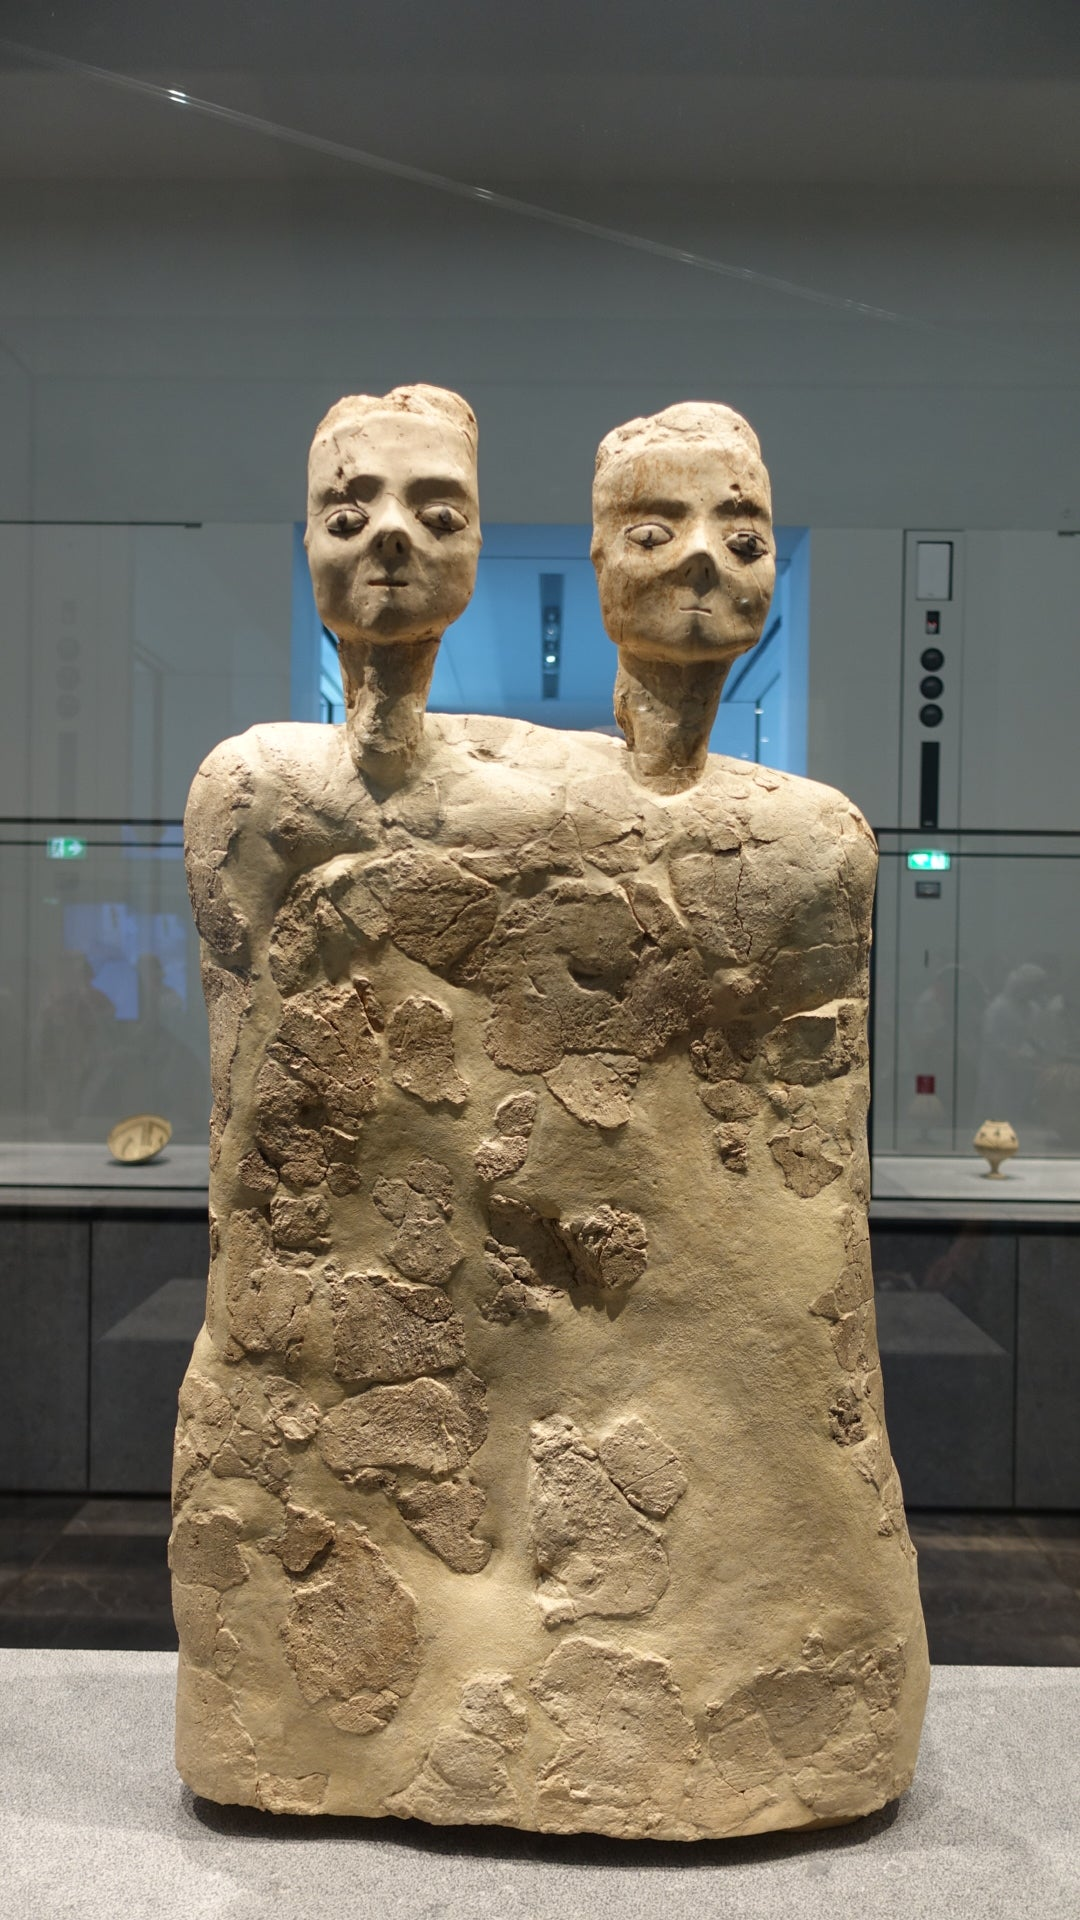 Two Headed Monument Louvre Abu Dhabi